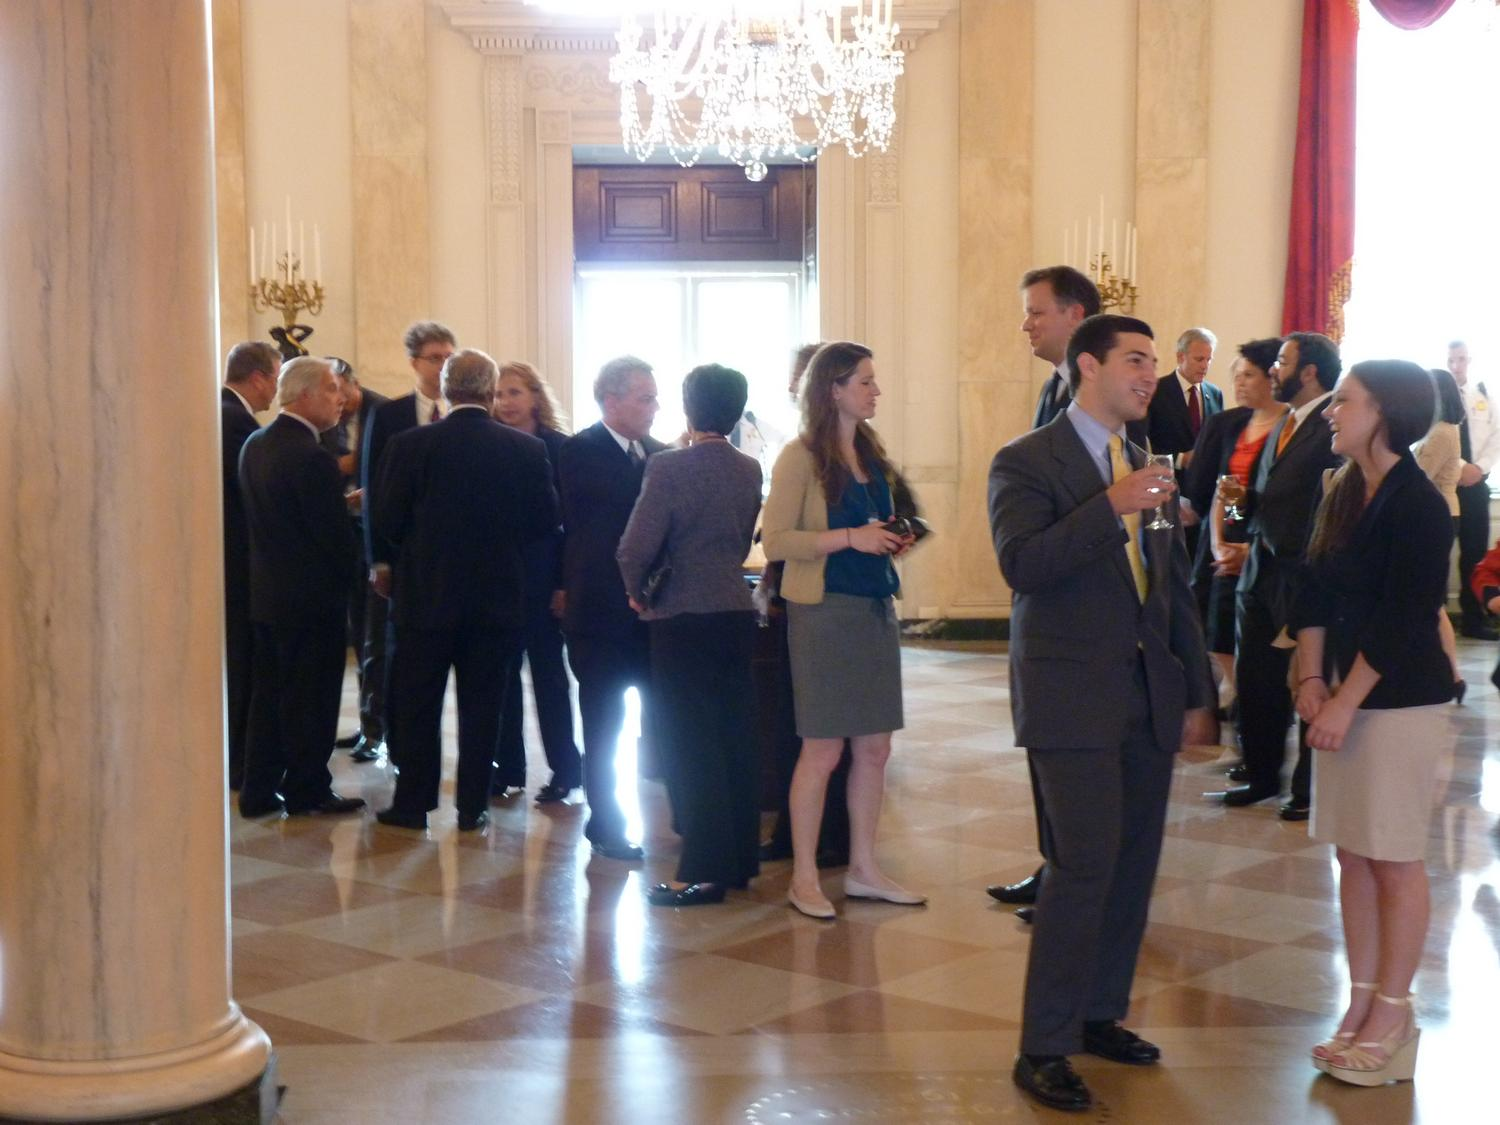 - Some of the attendees at the reception. - Panasonic DMC-FZ35 - White House = President Barak Obama - Tony Karp, design, art, photography, techno-impressionist, techno-impressionism, aerial photography , drone , drones , dji , mavic pro , video , 3D printing - Books -